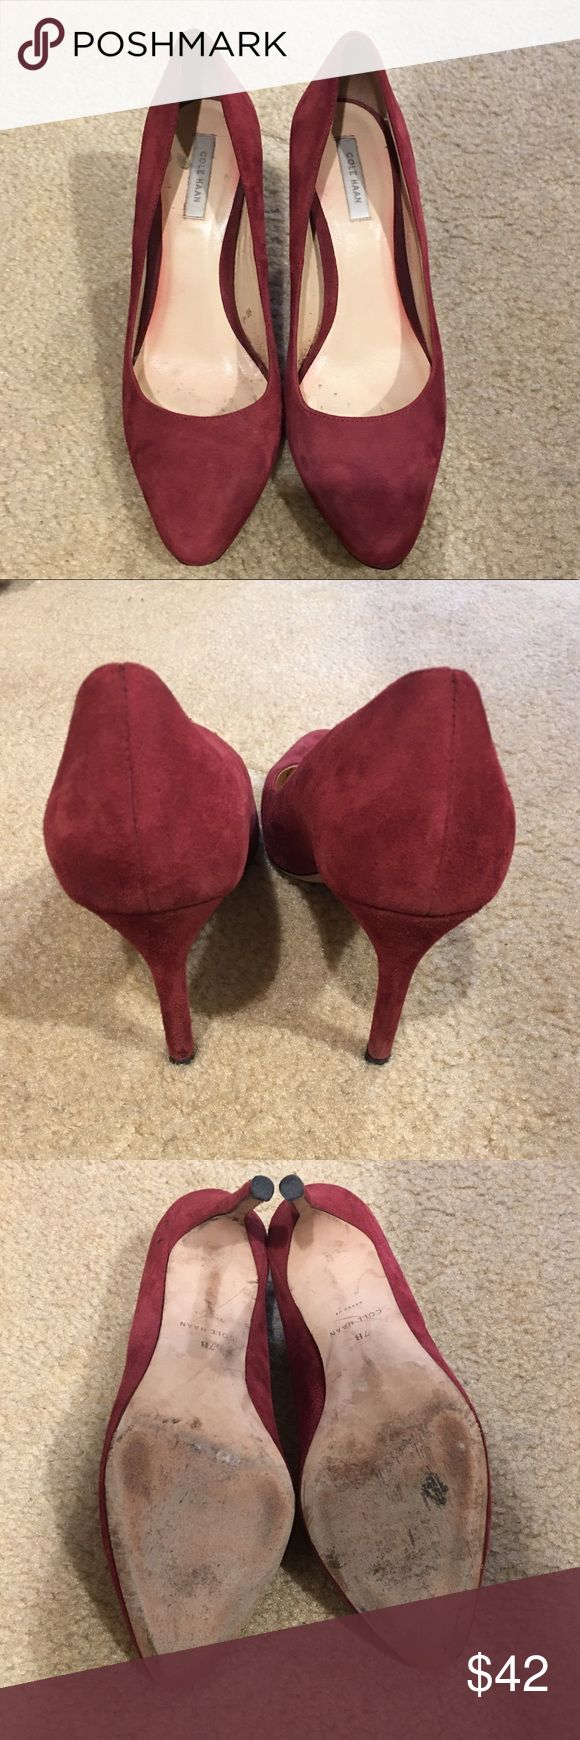 Cole Haan Pumps Used Condition Size 7, Velvet material. Cole Haan Shoes Heels